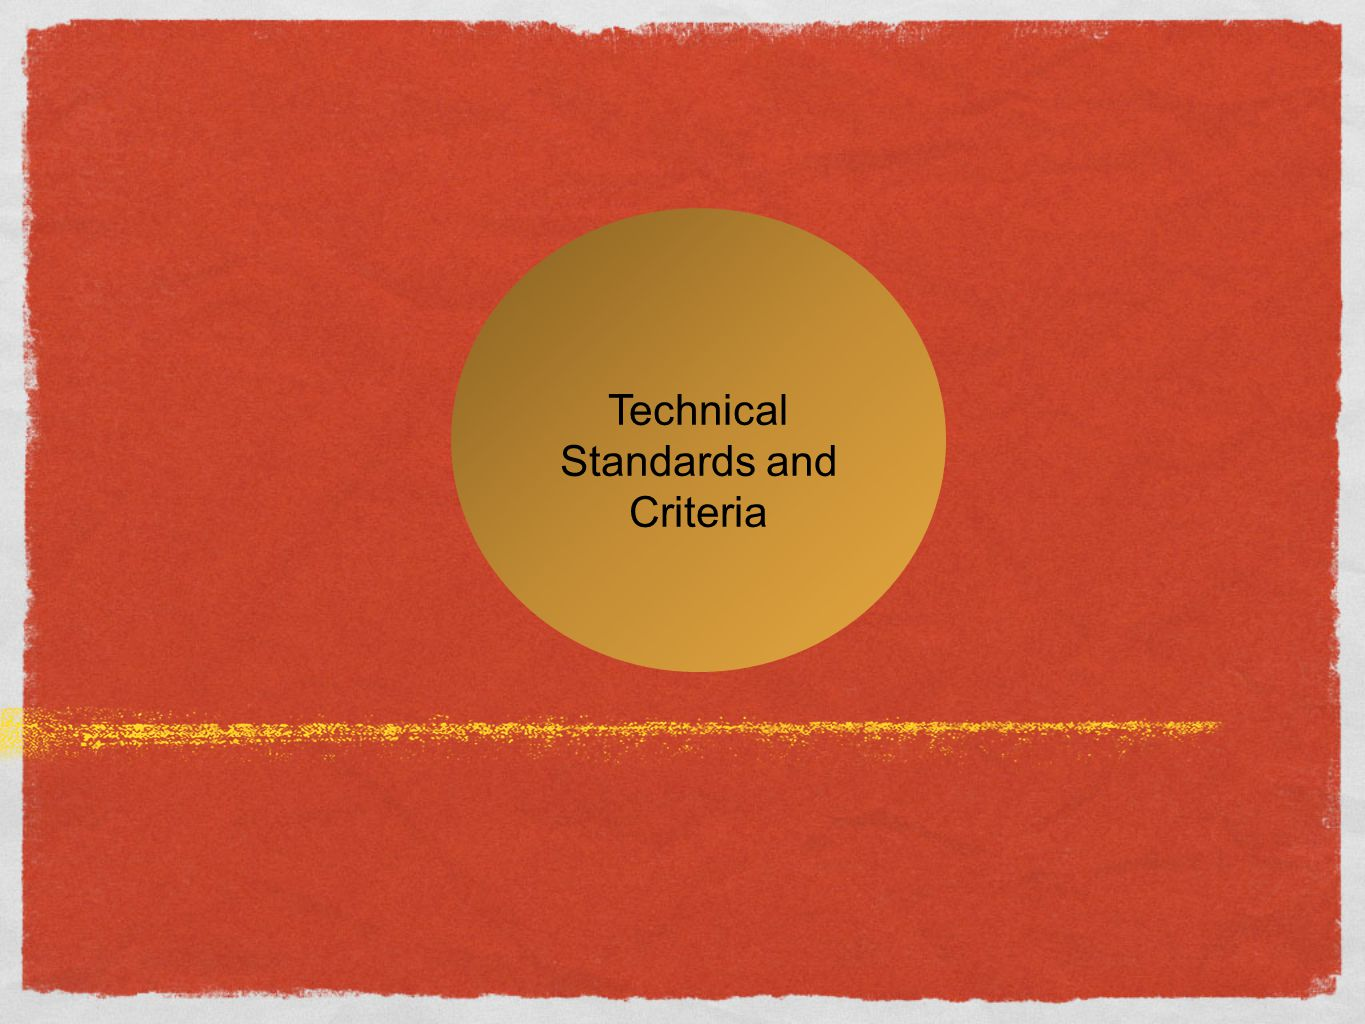 Technical Standards and Criteria